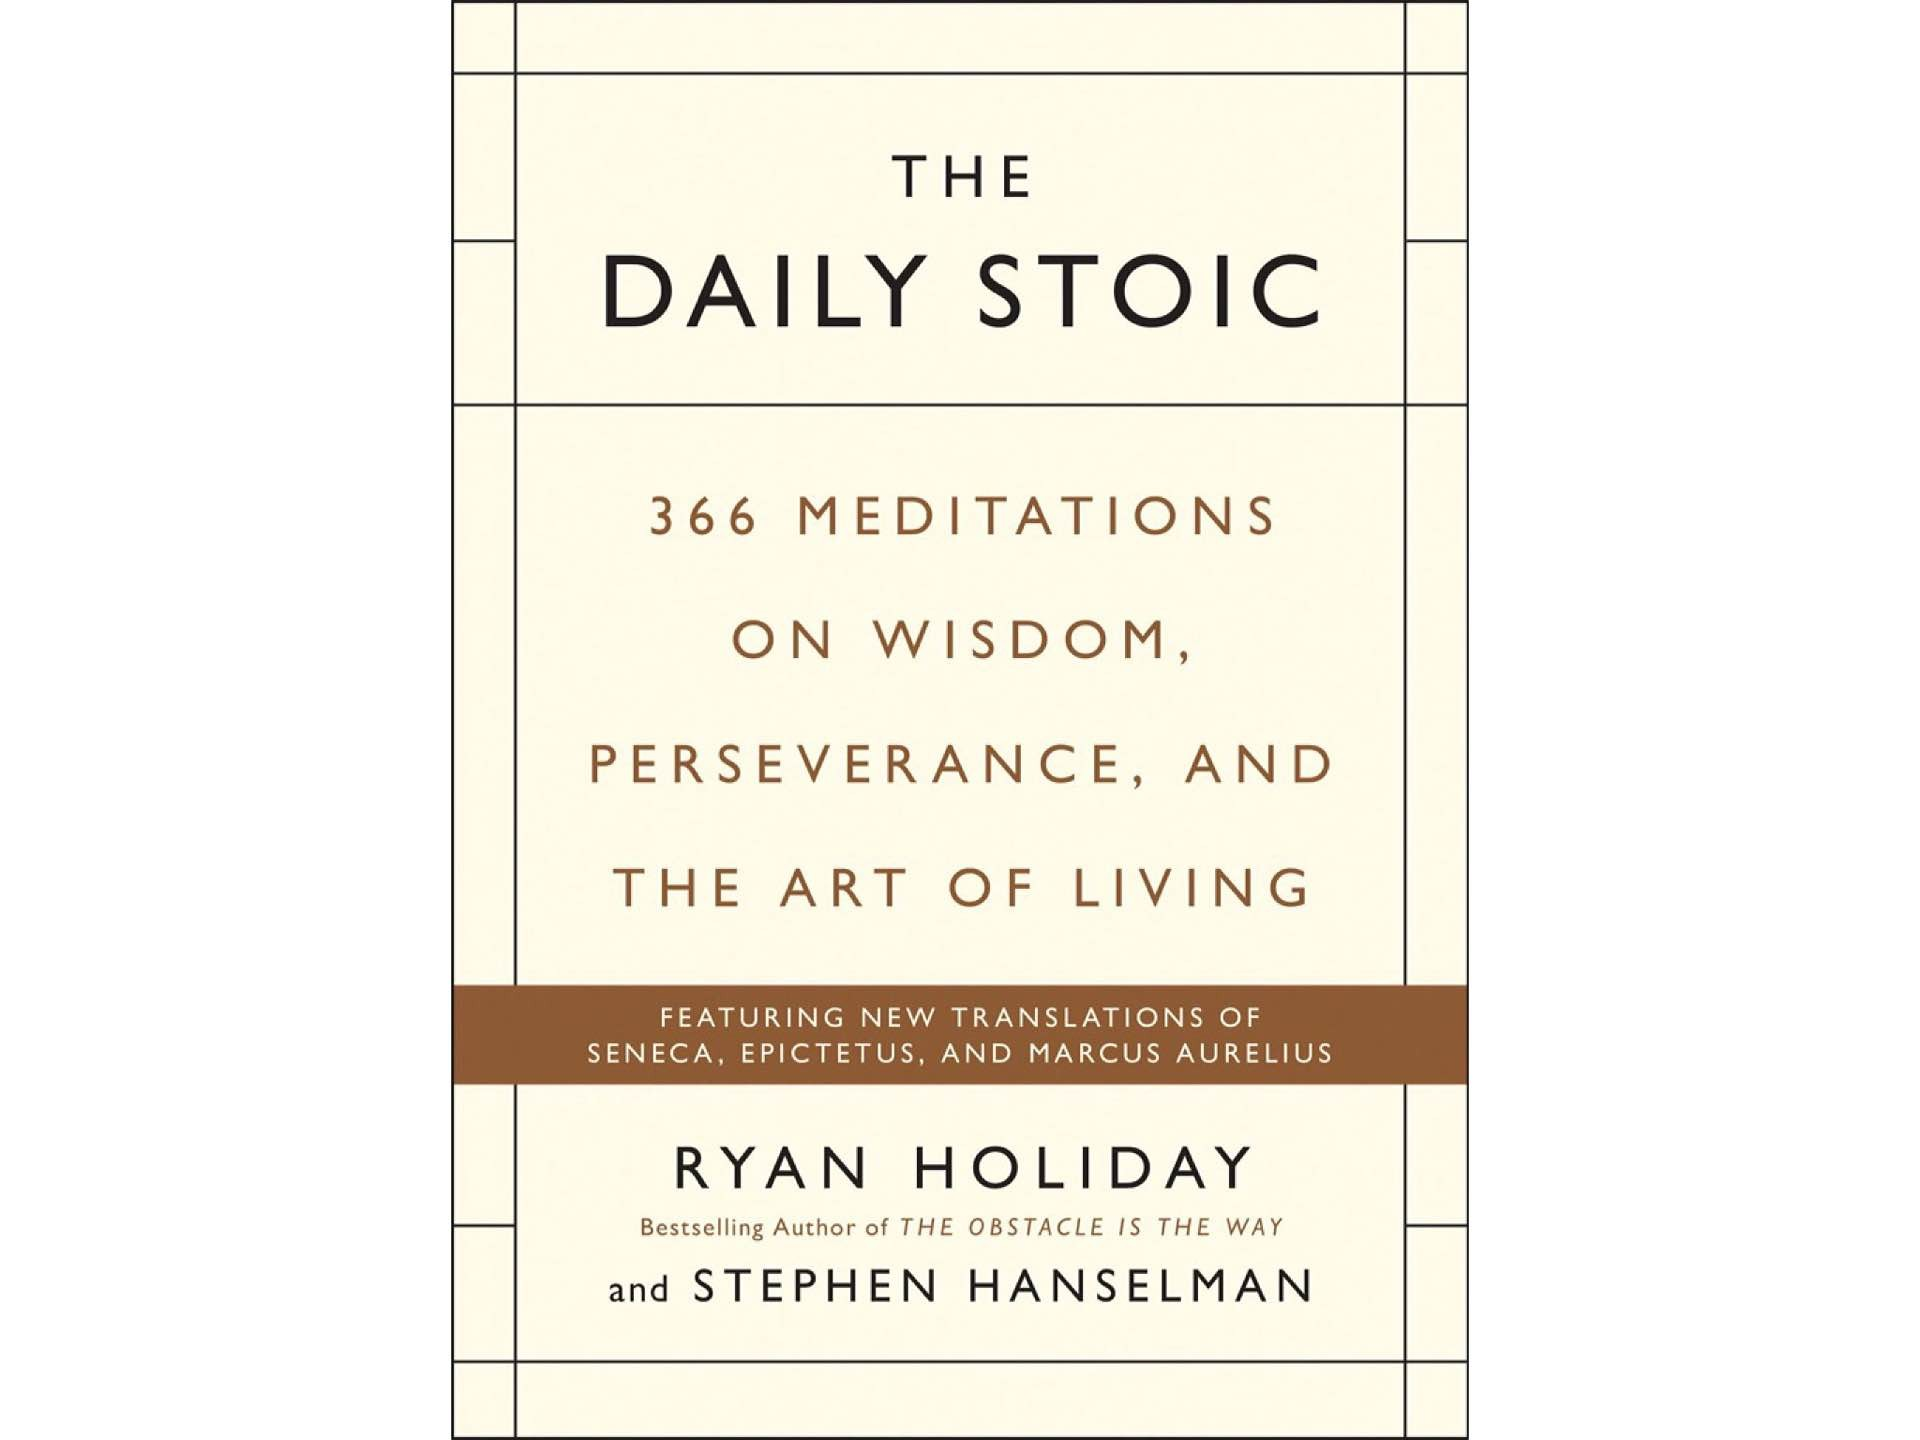 The Daily Stoic by Ryan Holiday. ($15 hardcover)